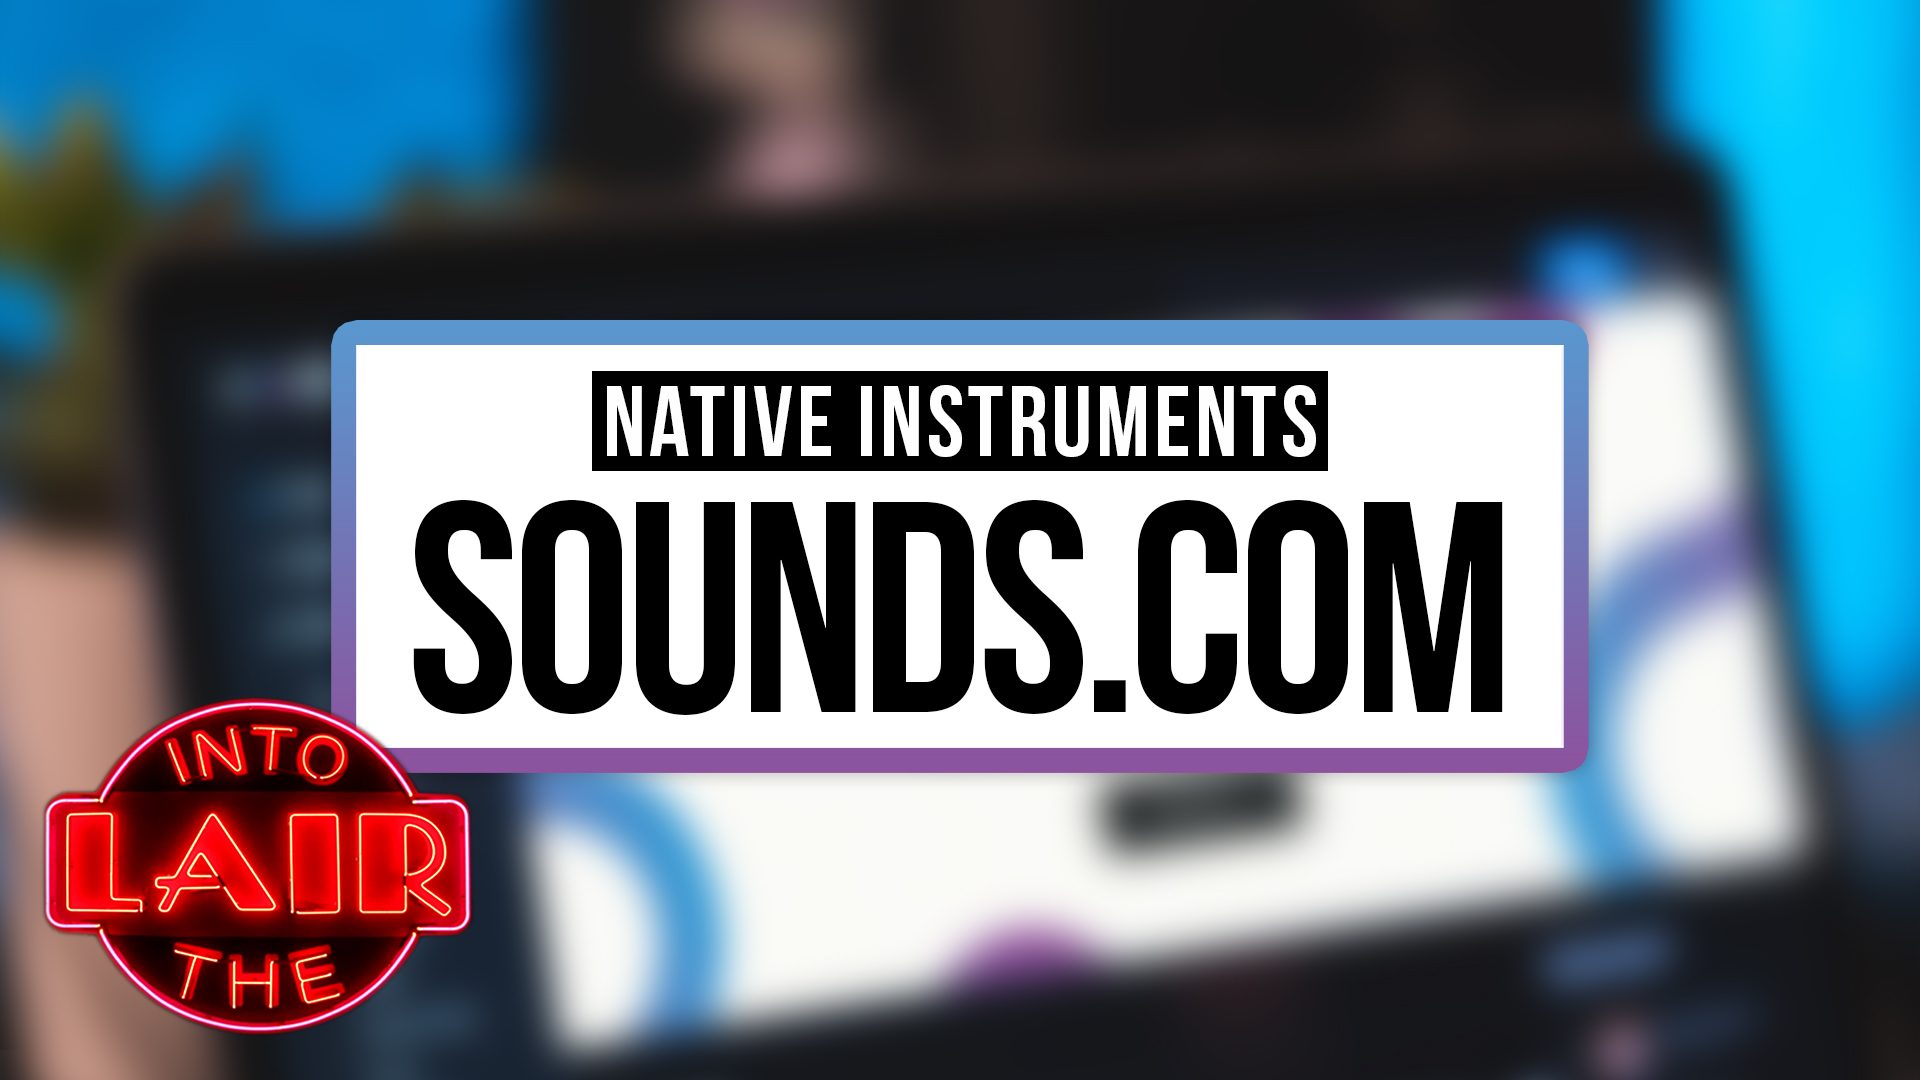 Native Instruments Sounds.com